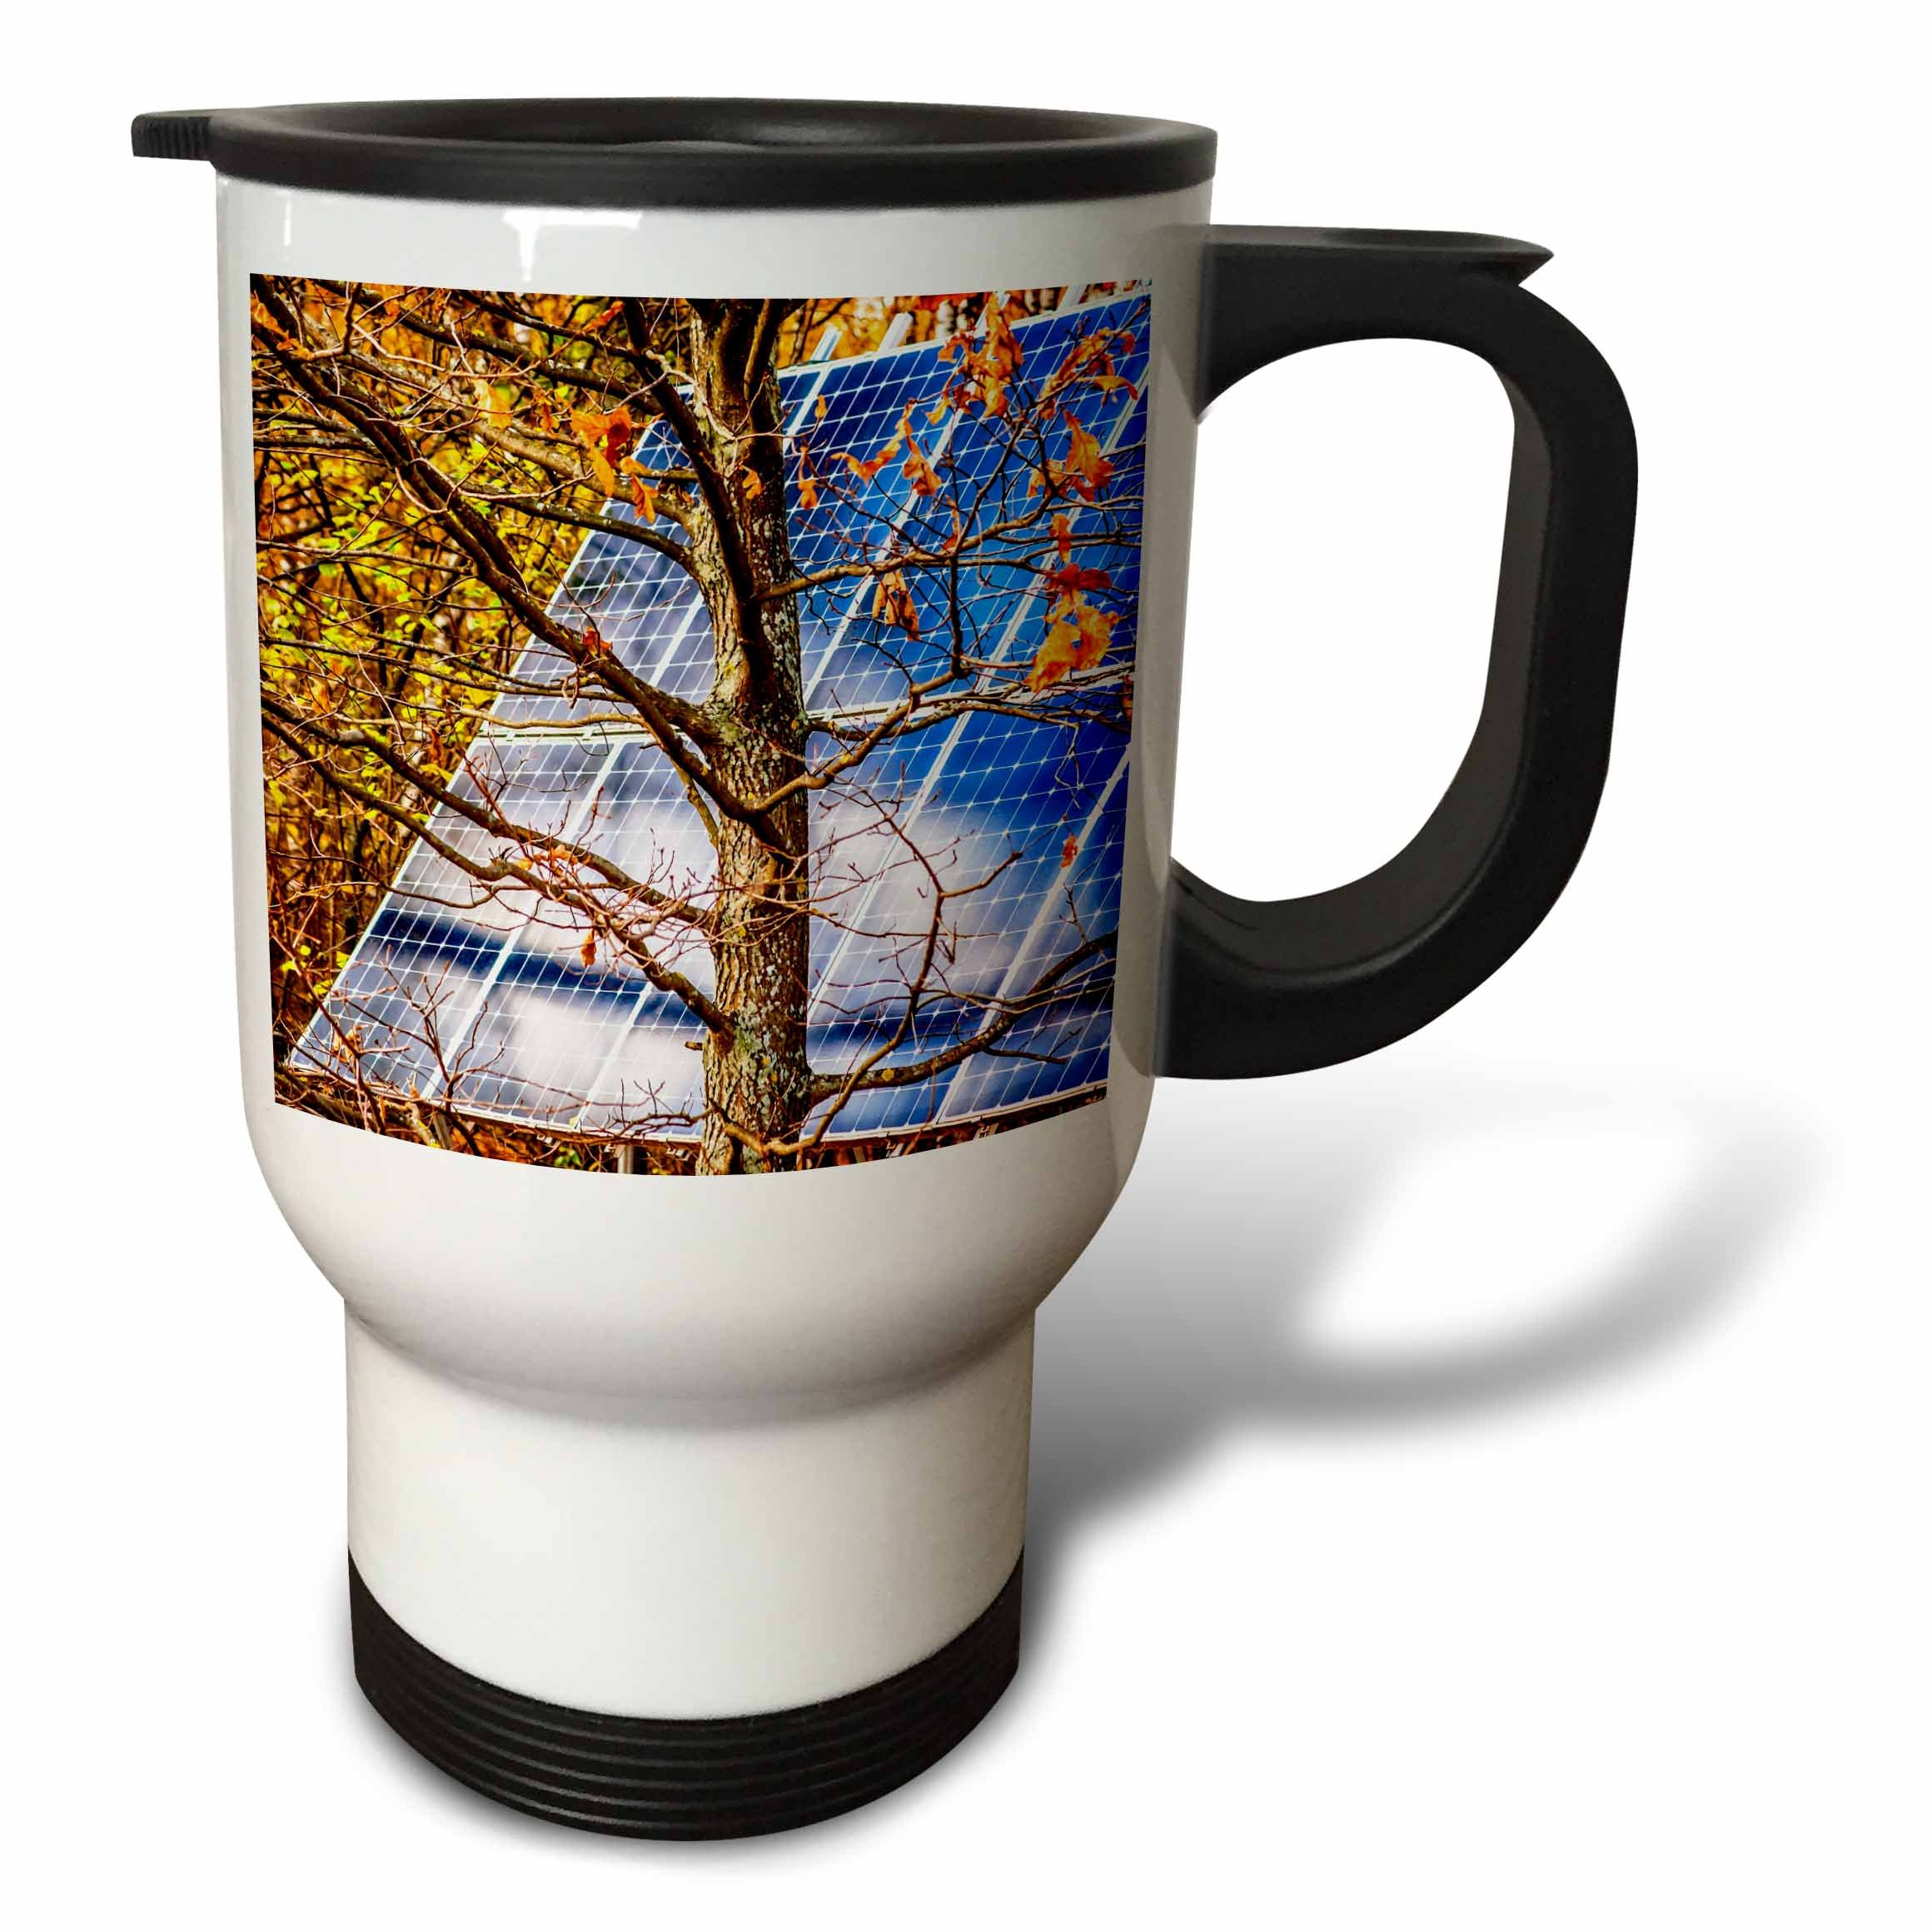 3dRose Alexis Photo-Art - Objects - Blue solar power panel in the autumn forest. Photosynthesis - 14oz Stainless Steel Travel Mug (tm_270321_1)